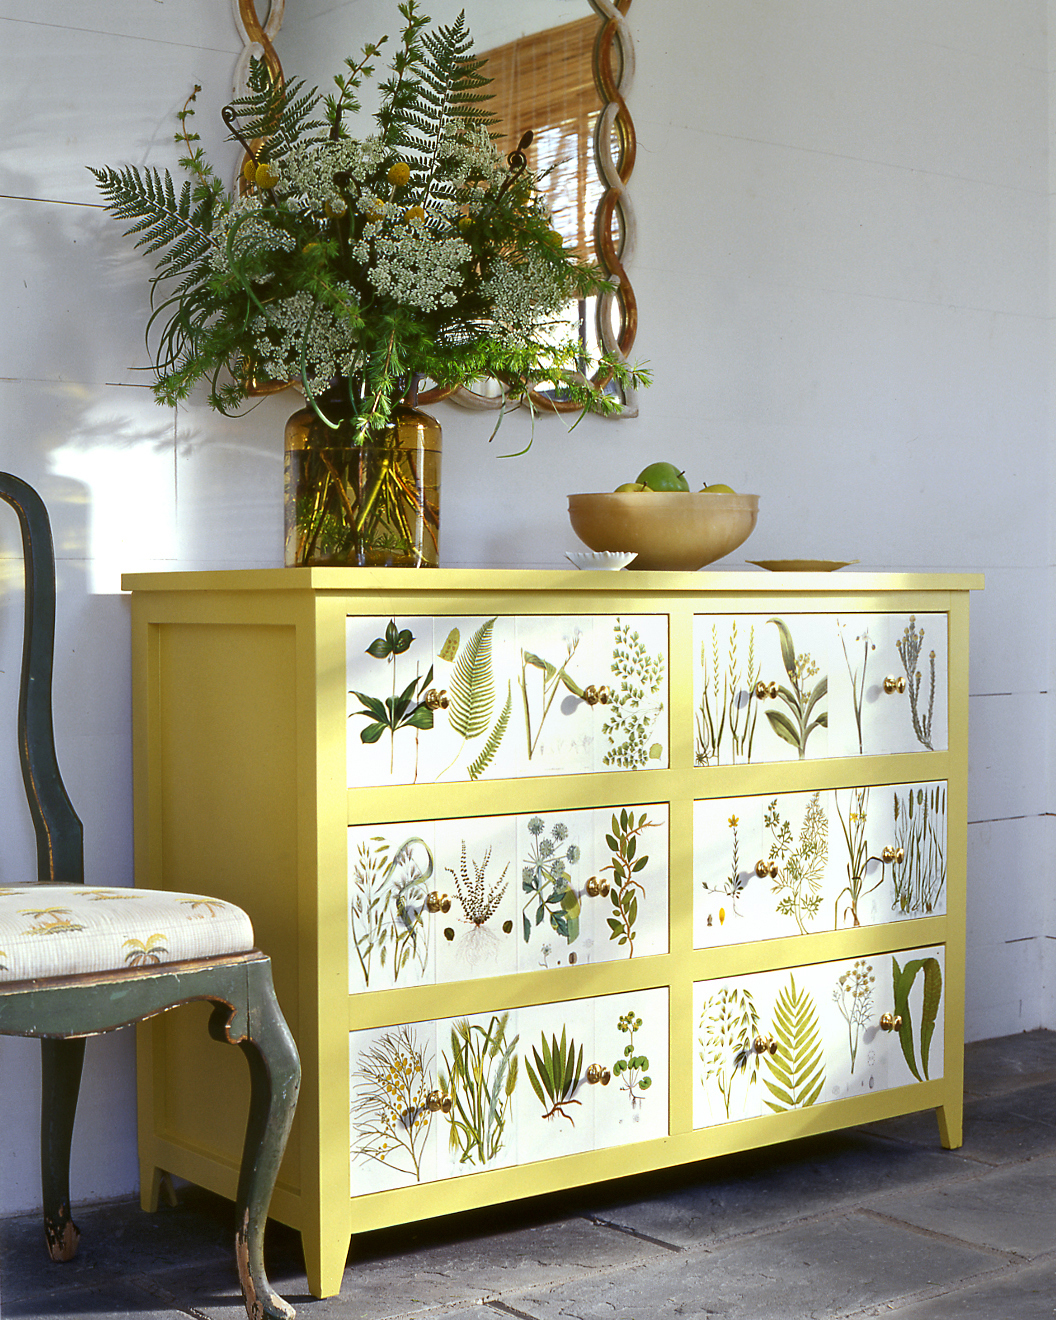 yellow dresser with botanical pressings